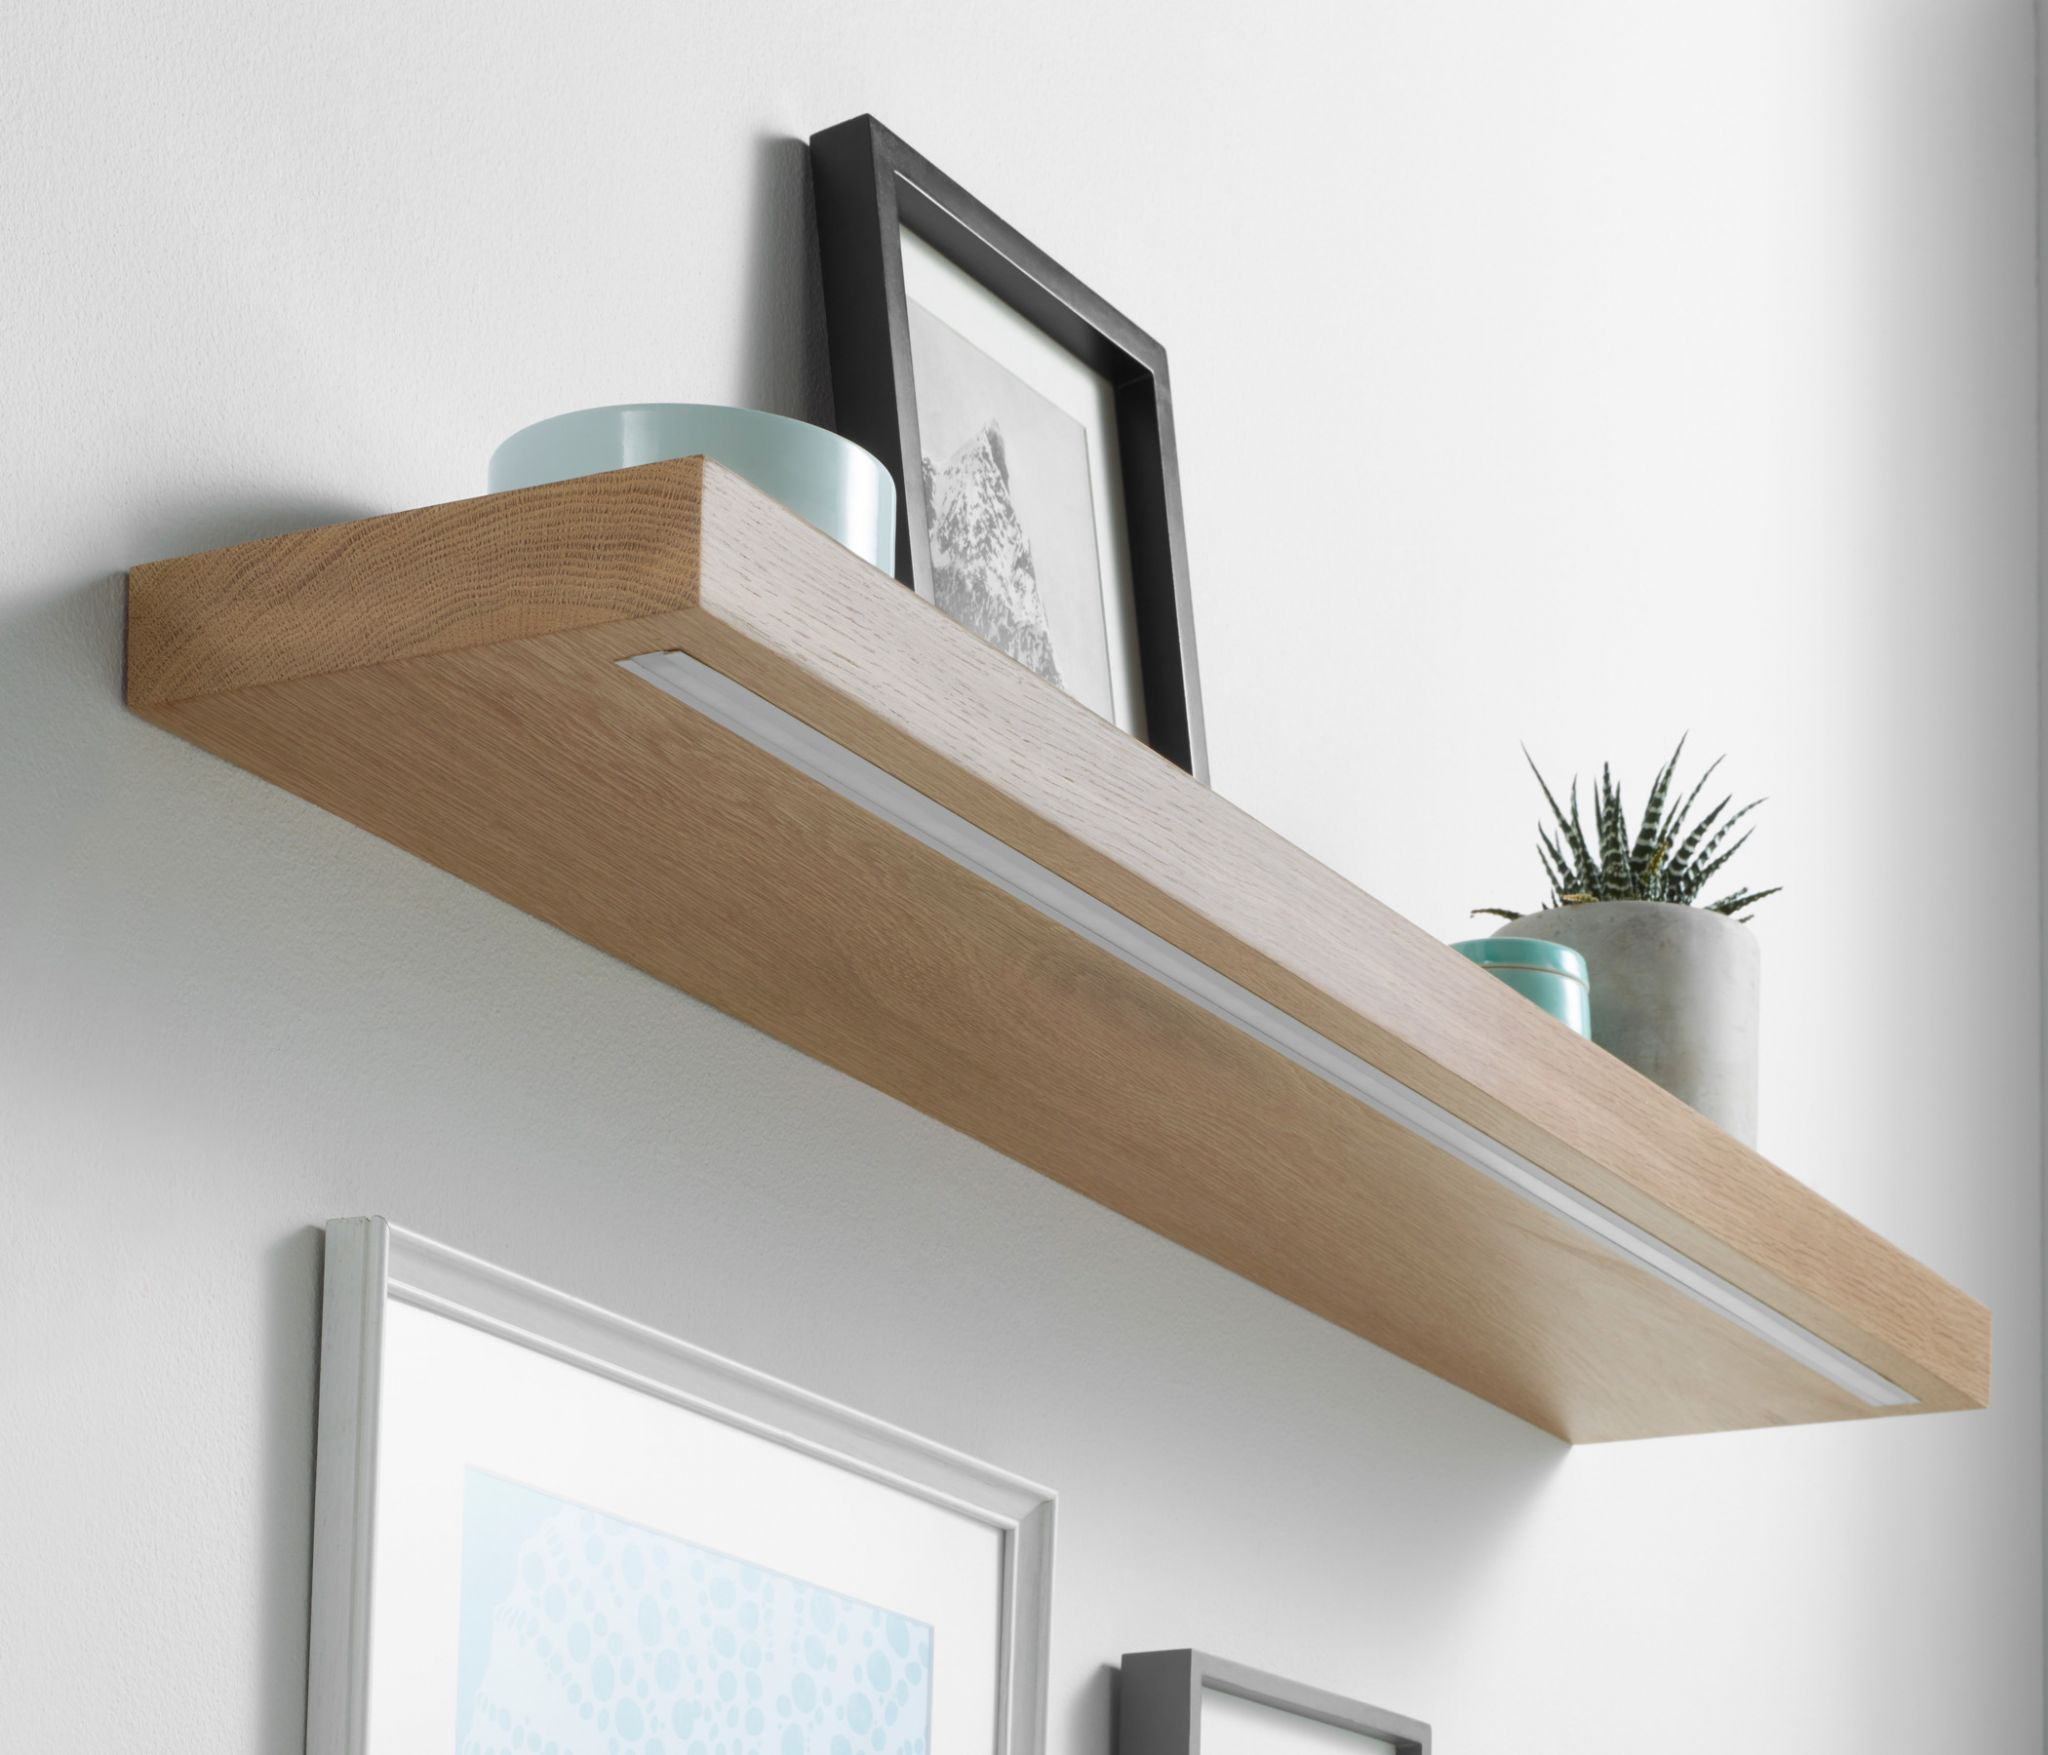 floating shelf with light household hidden led lighting encourage solid oak custom made measure intended for wall shelves lights underneath build wooden bookshelf wardrobe